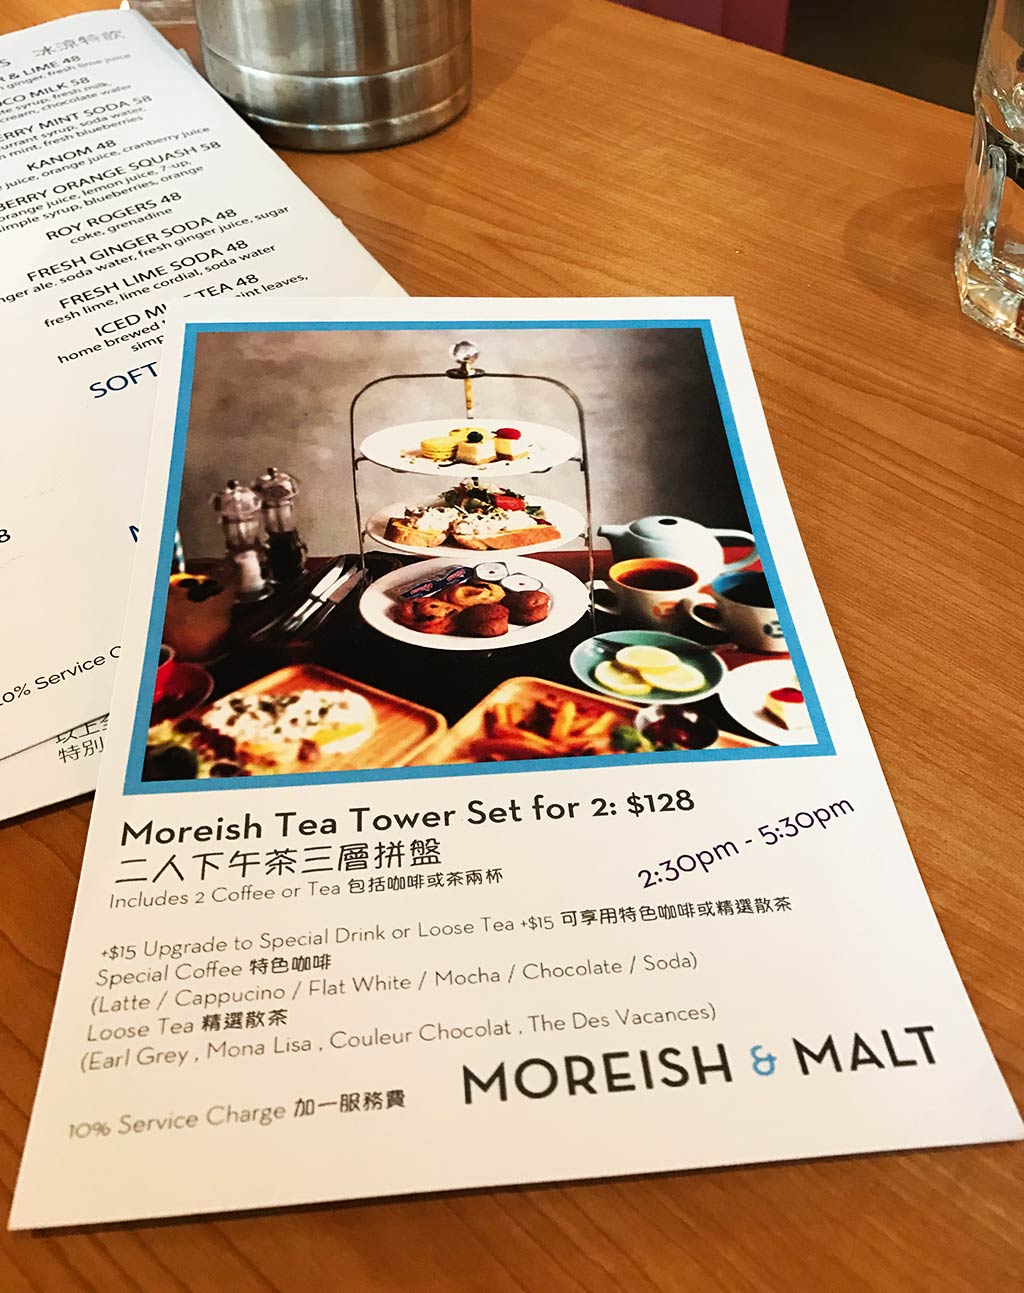 Moreish and Malt afternoon tea menu, kwun tong, kowloon, hong kong | Laugh Travel Eat